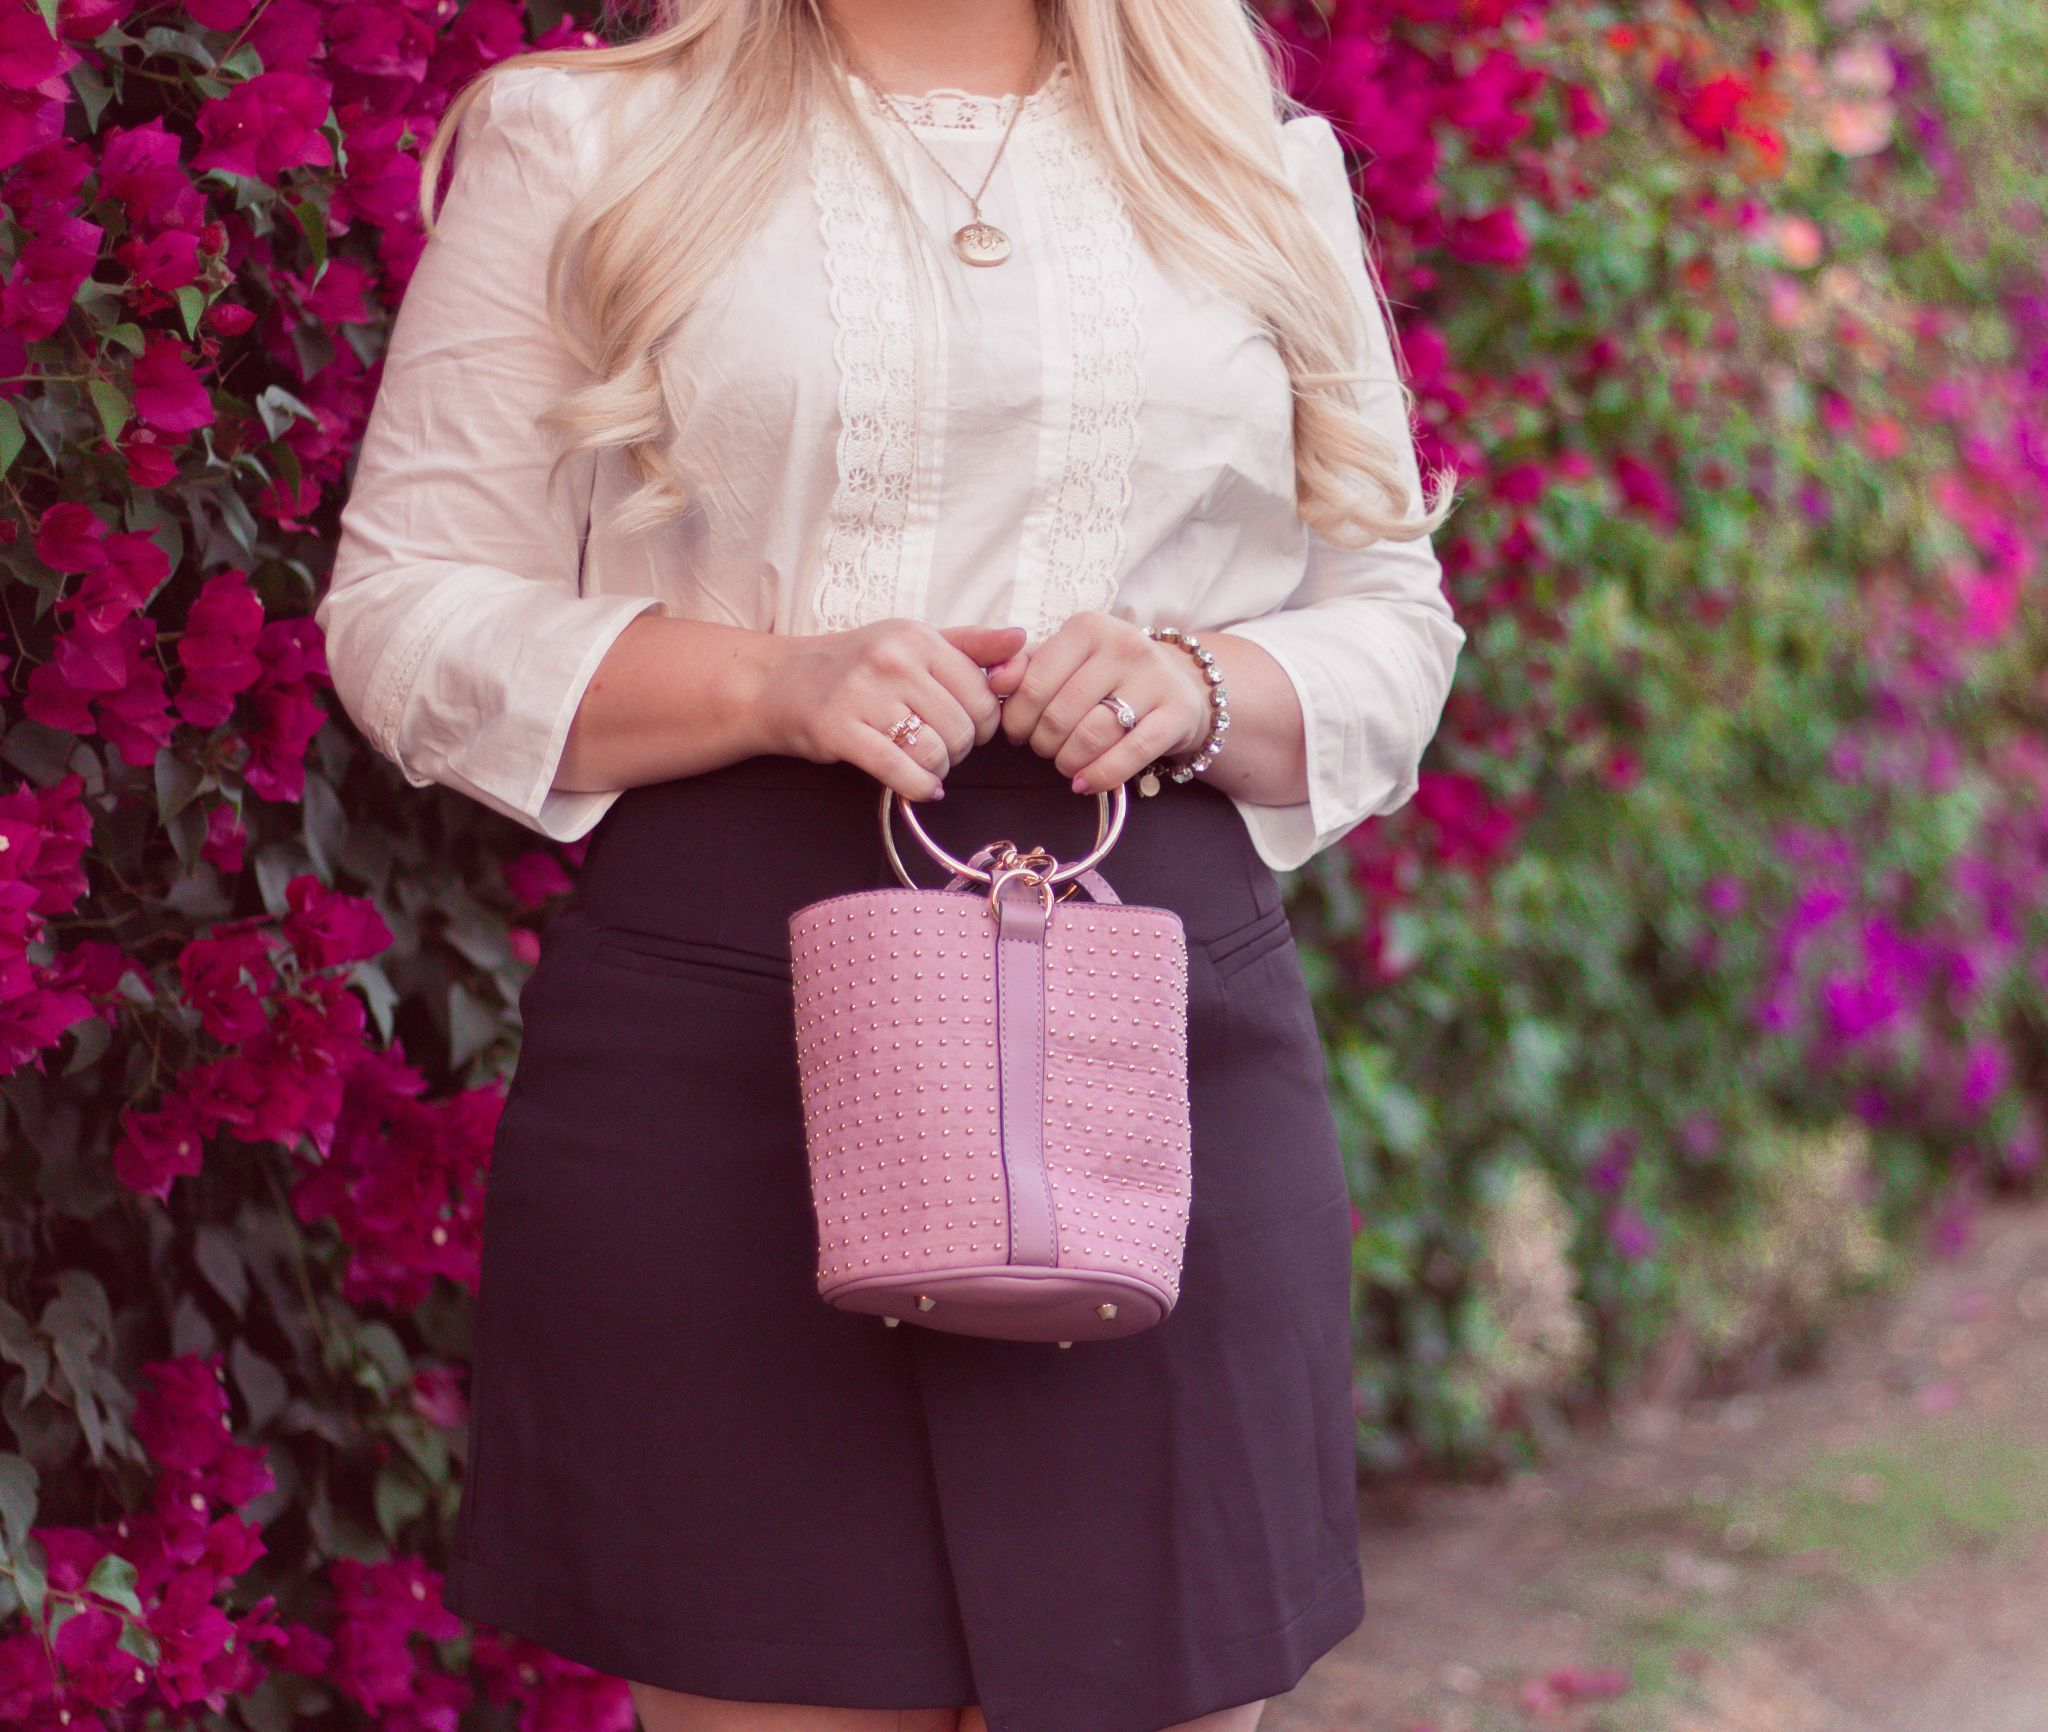 wear navy and blush